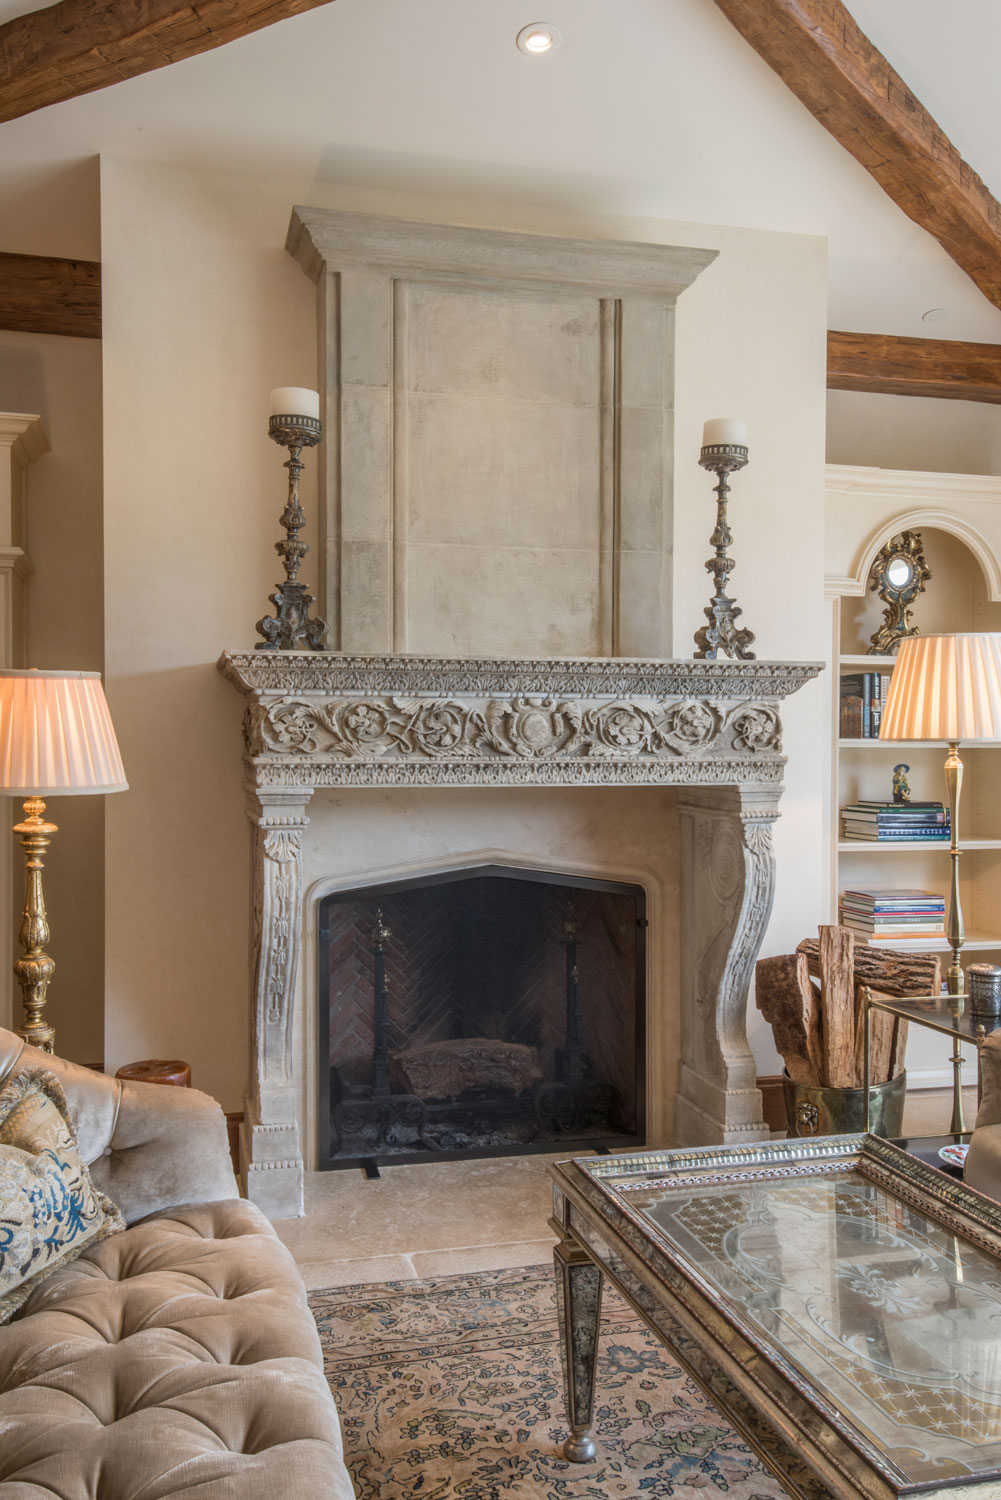 10-ornate-traditional-fireplace-surround-gary-drake-general-contractor.jpg